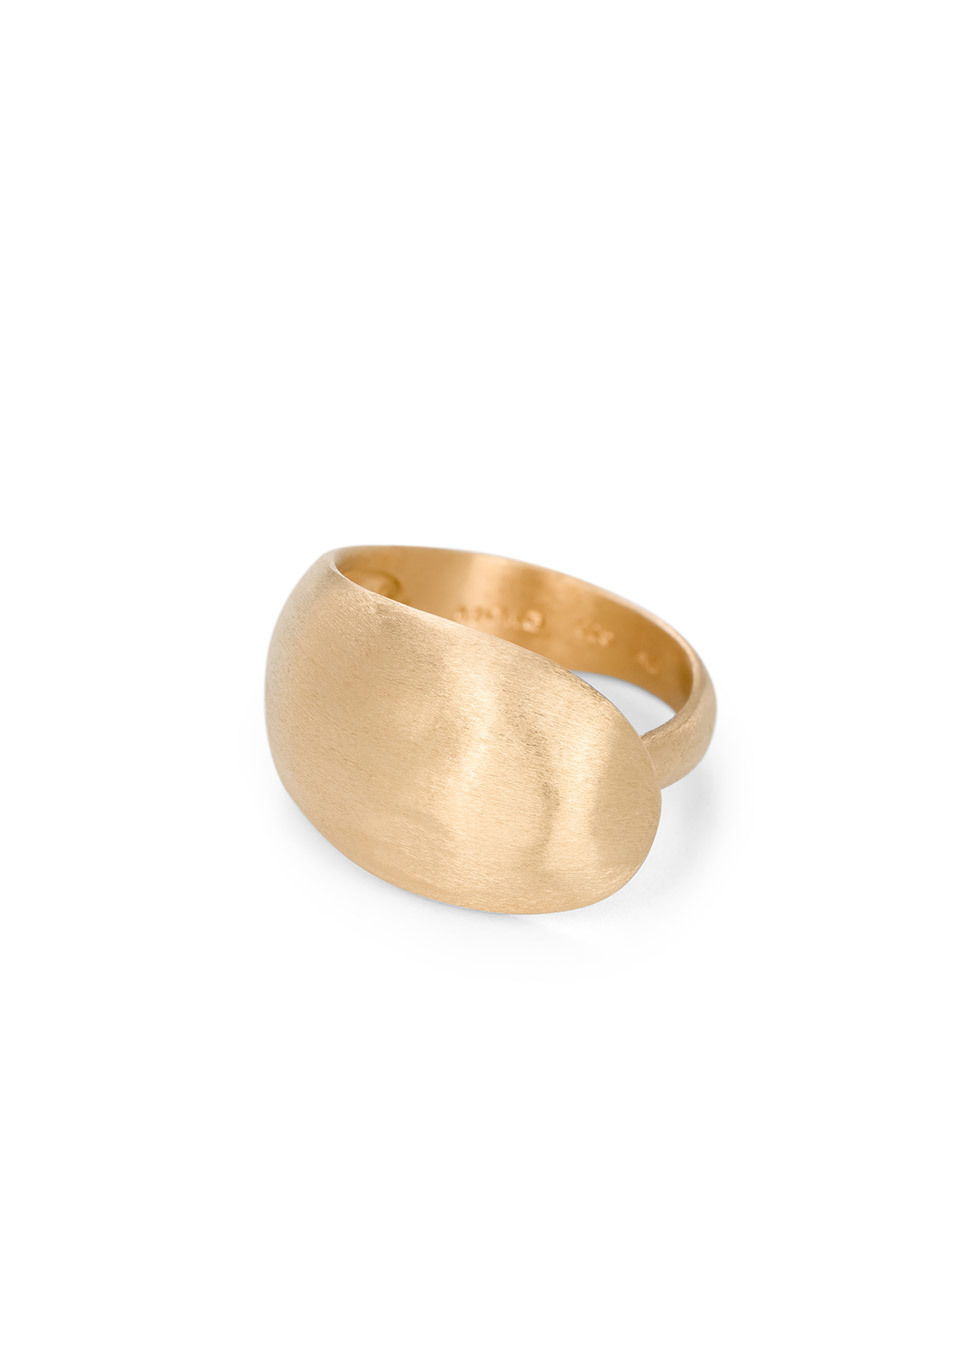 BJ0RG JEWELLERY CLOUDLESS SKY GOLD RING SIZE L